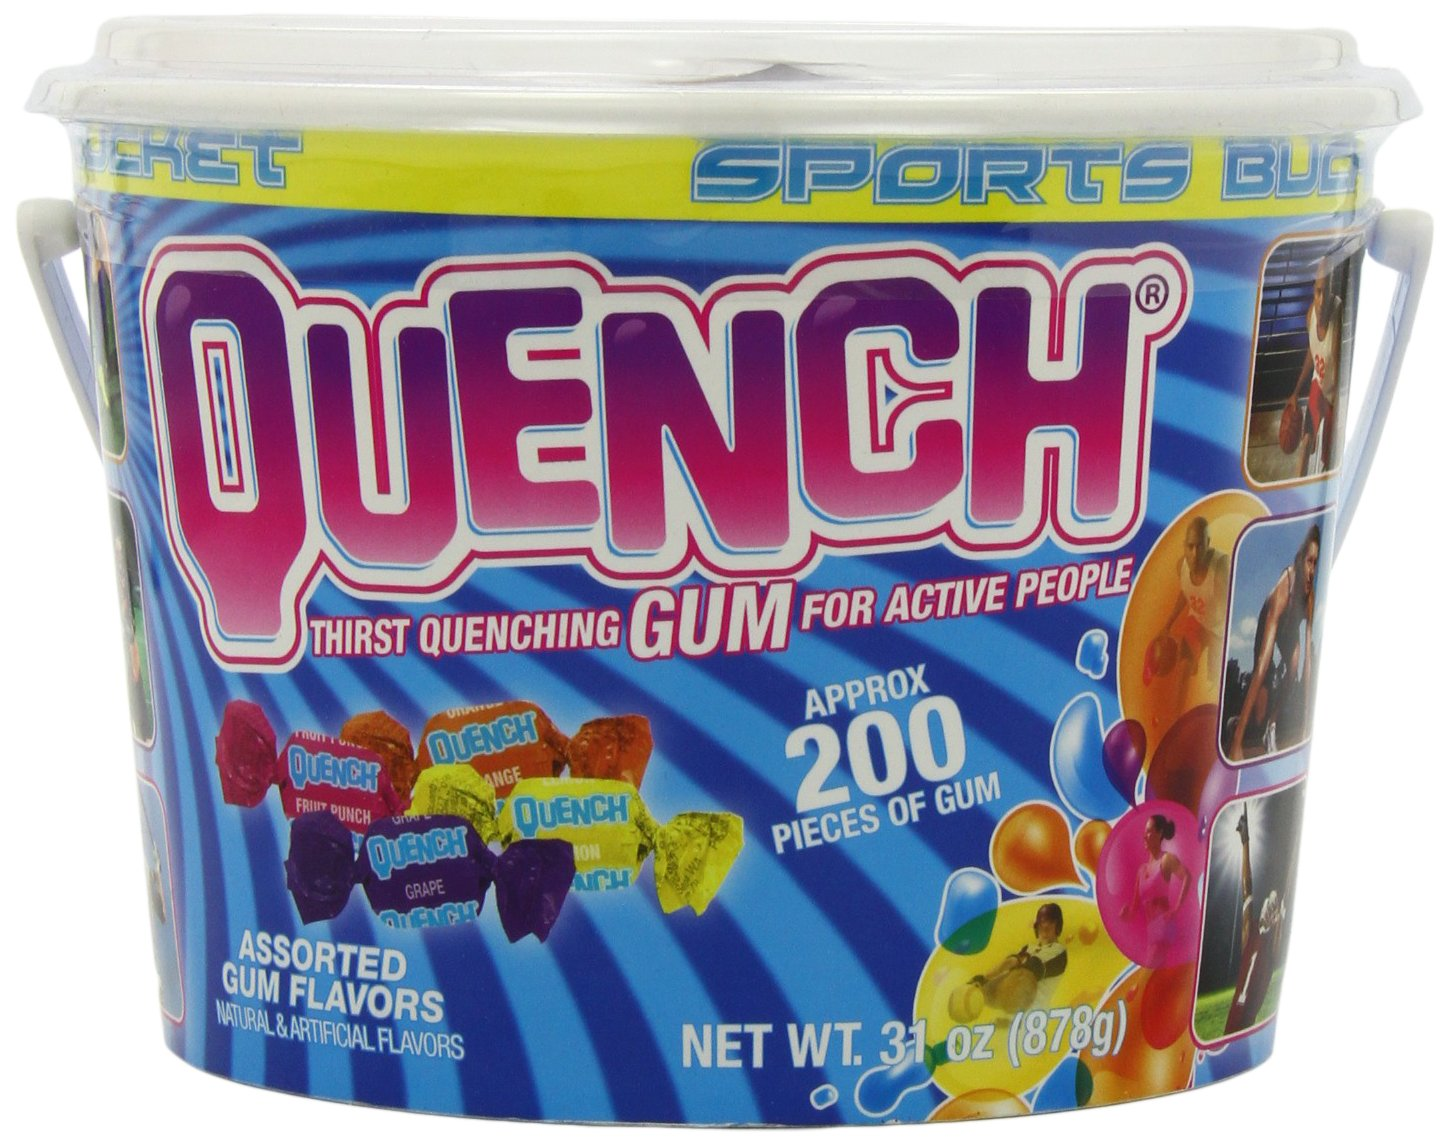 Quench Gum Sports Team Chewing Gum Bucket, 200 Count